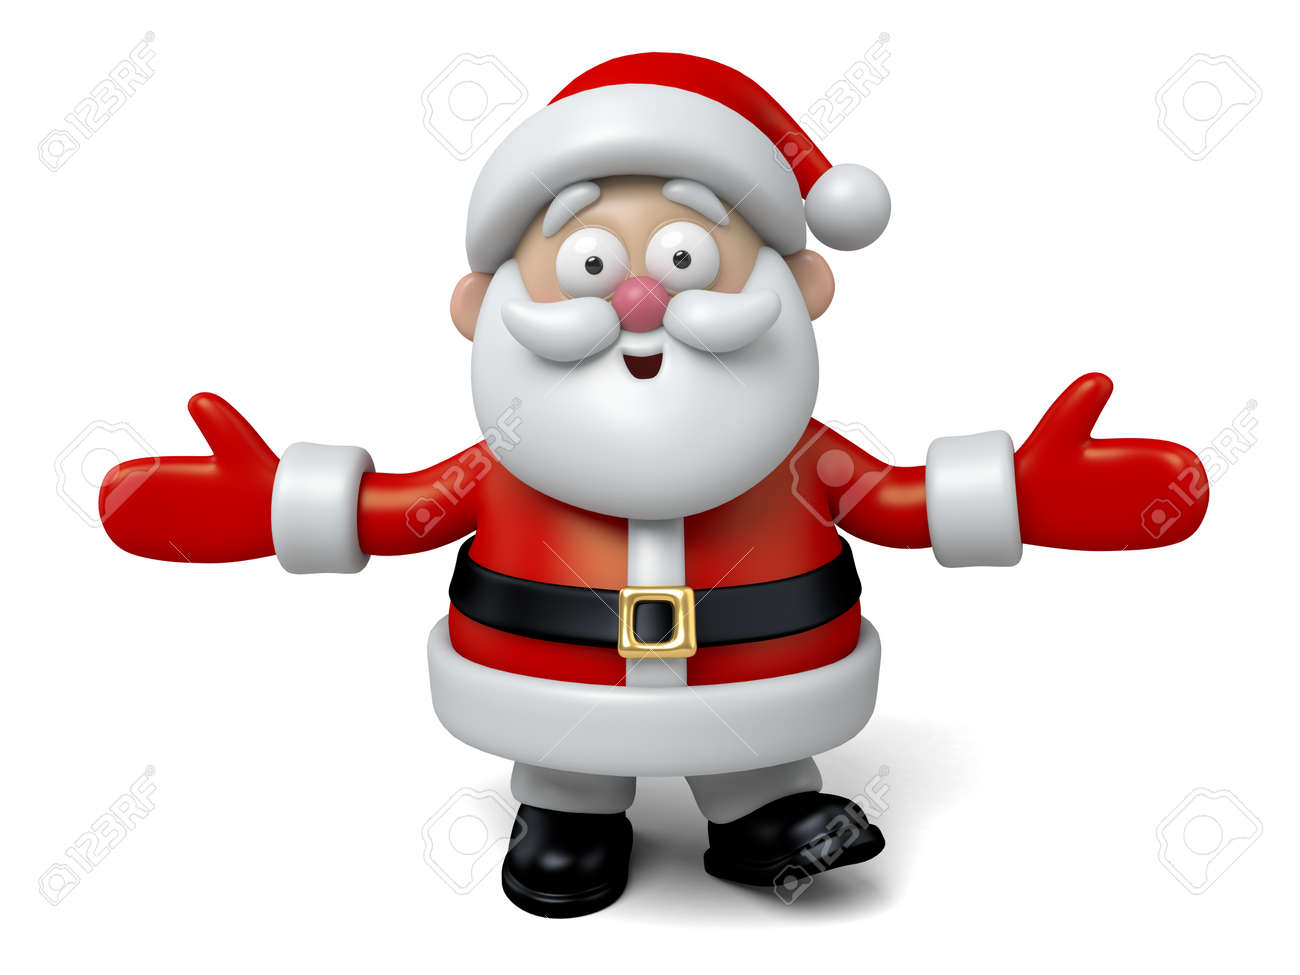 The Santa Claus makes a personalized gesture - 47554562